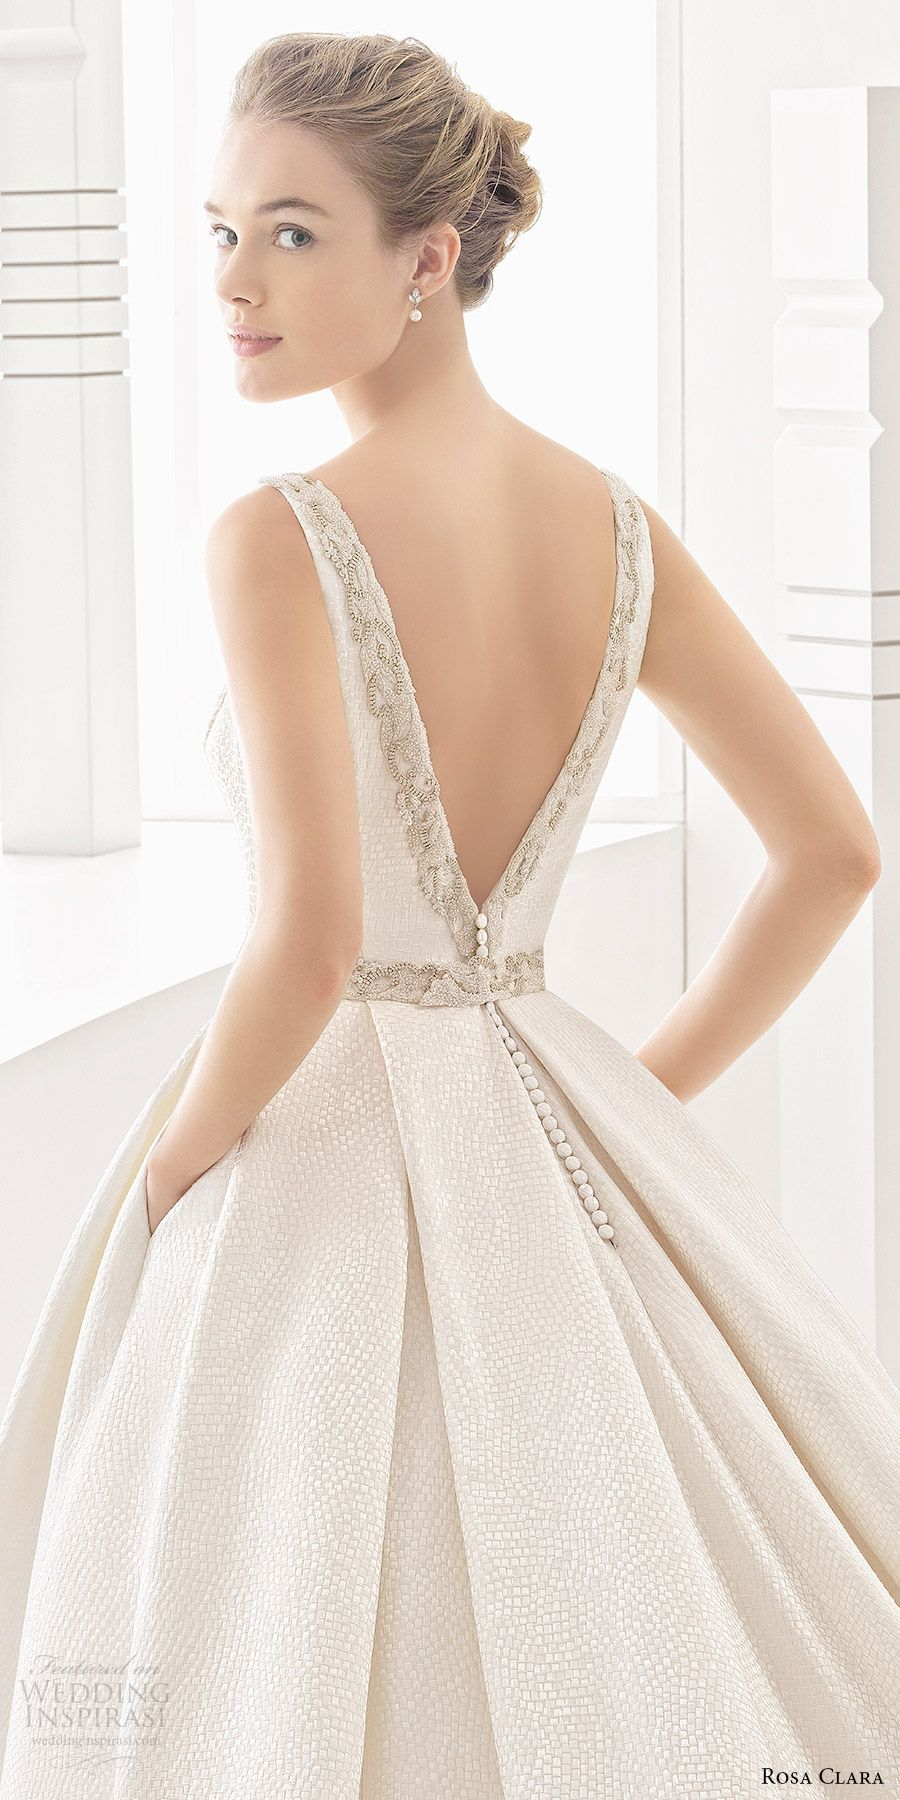 Fancy Wedding Dress Trends u Part The Hottest in Backs Necklines and Sleeves This Year